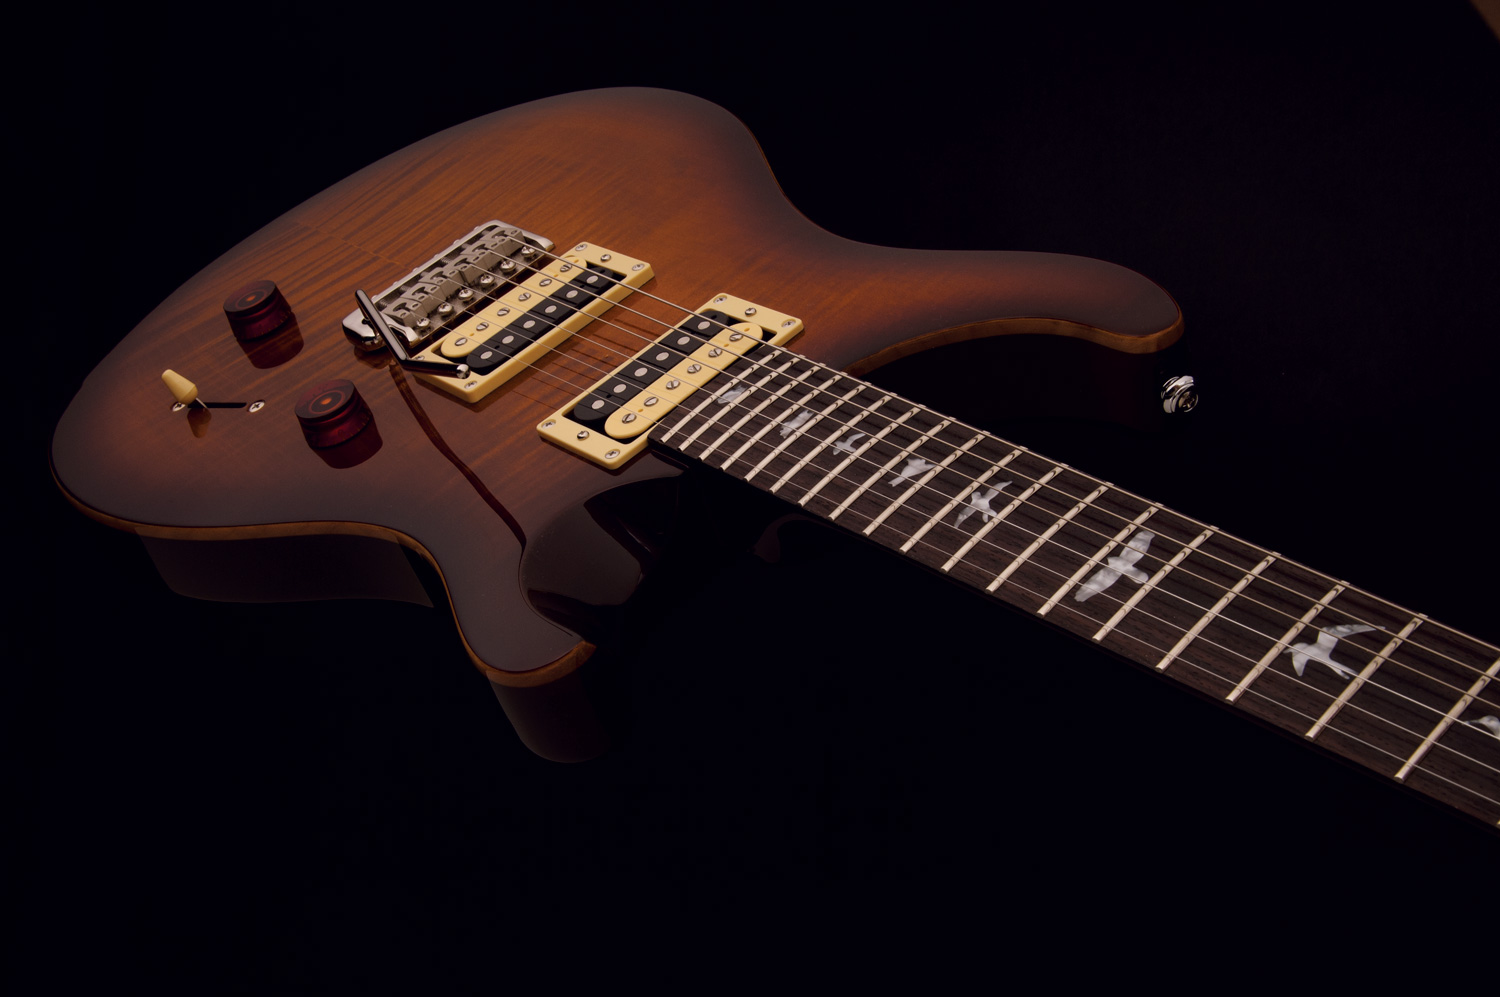 Top 10 Electric Guitar Colors of 2013